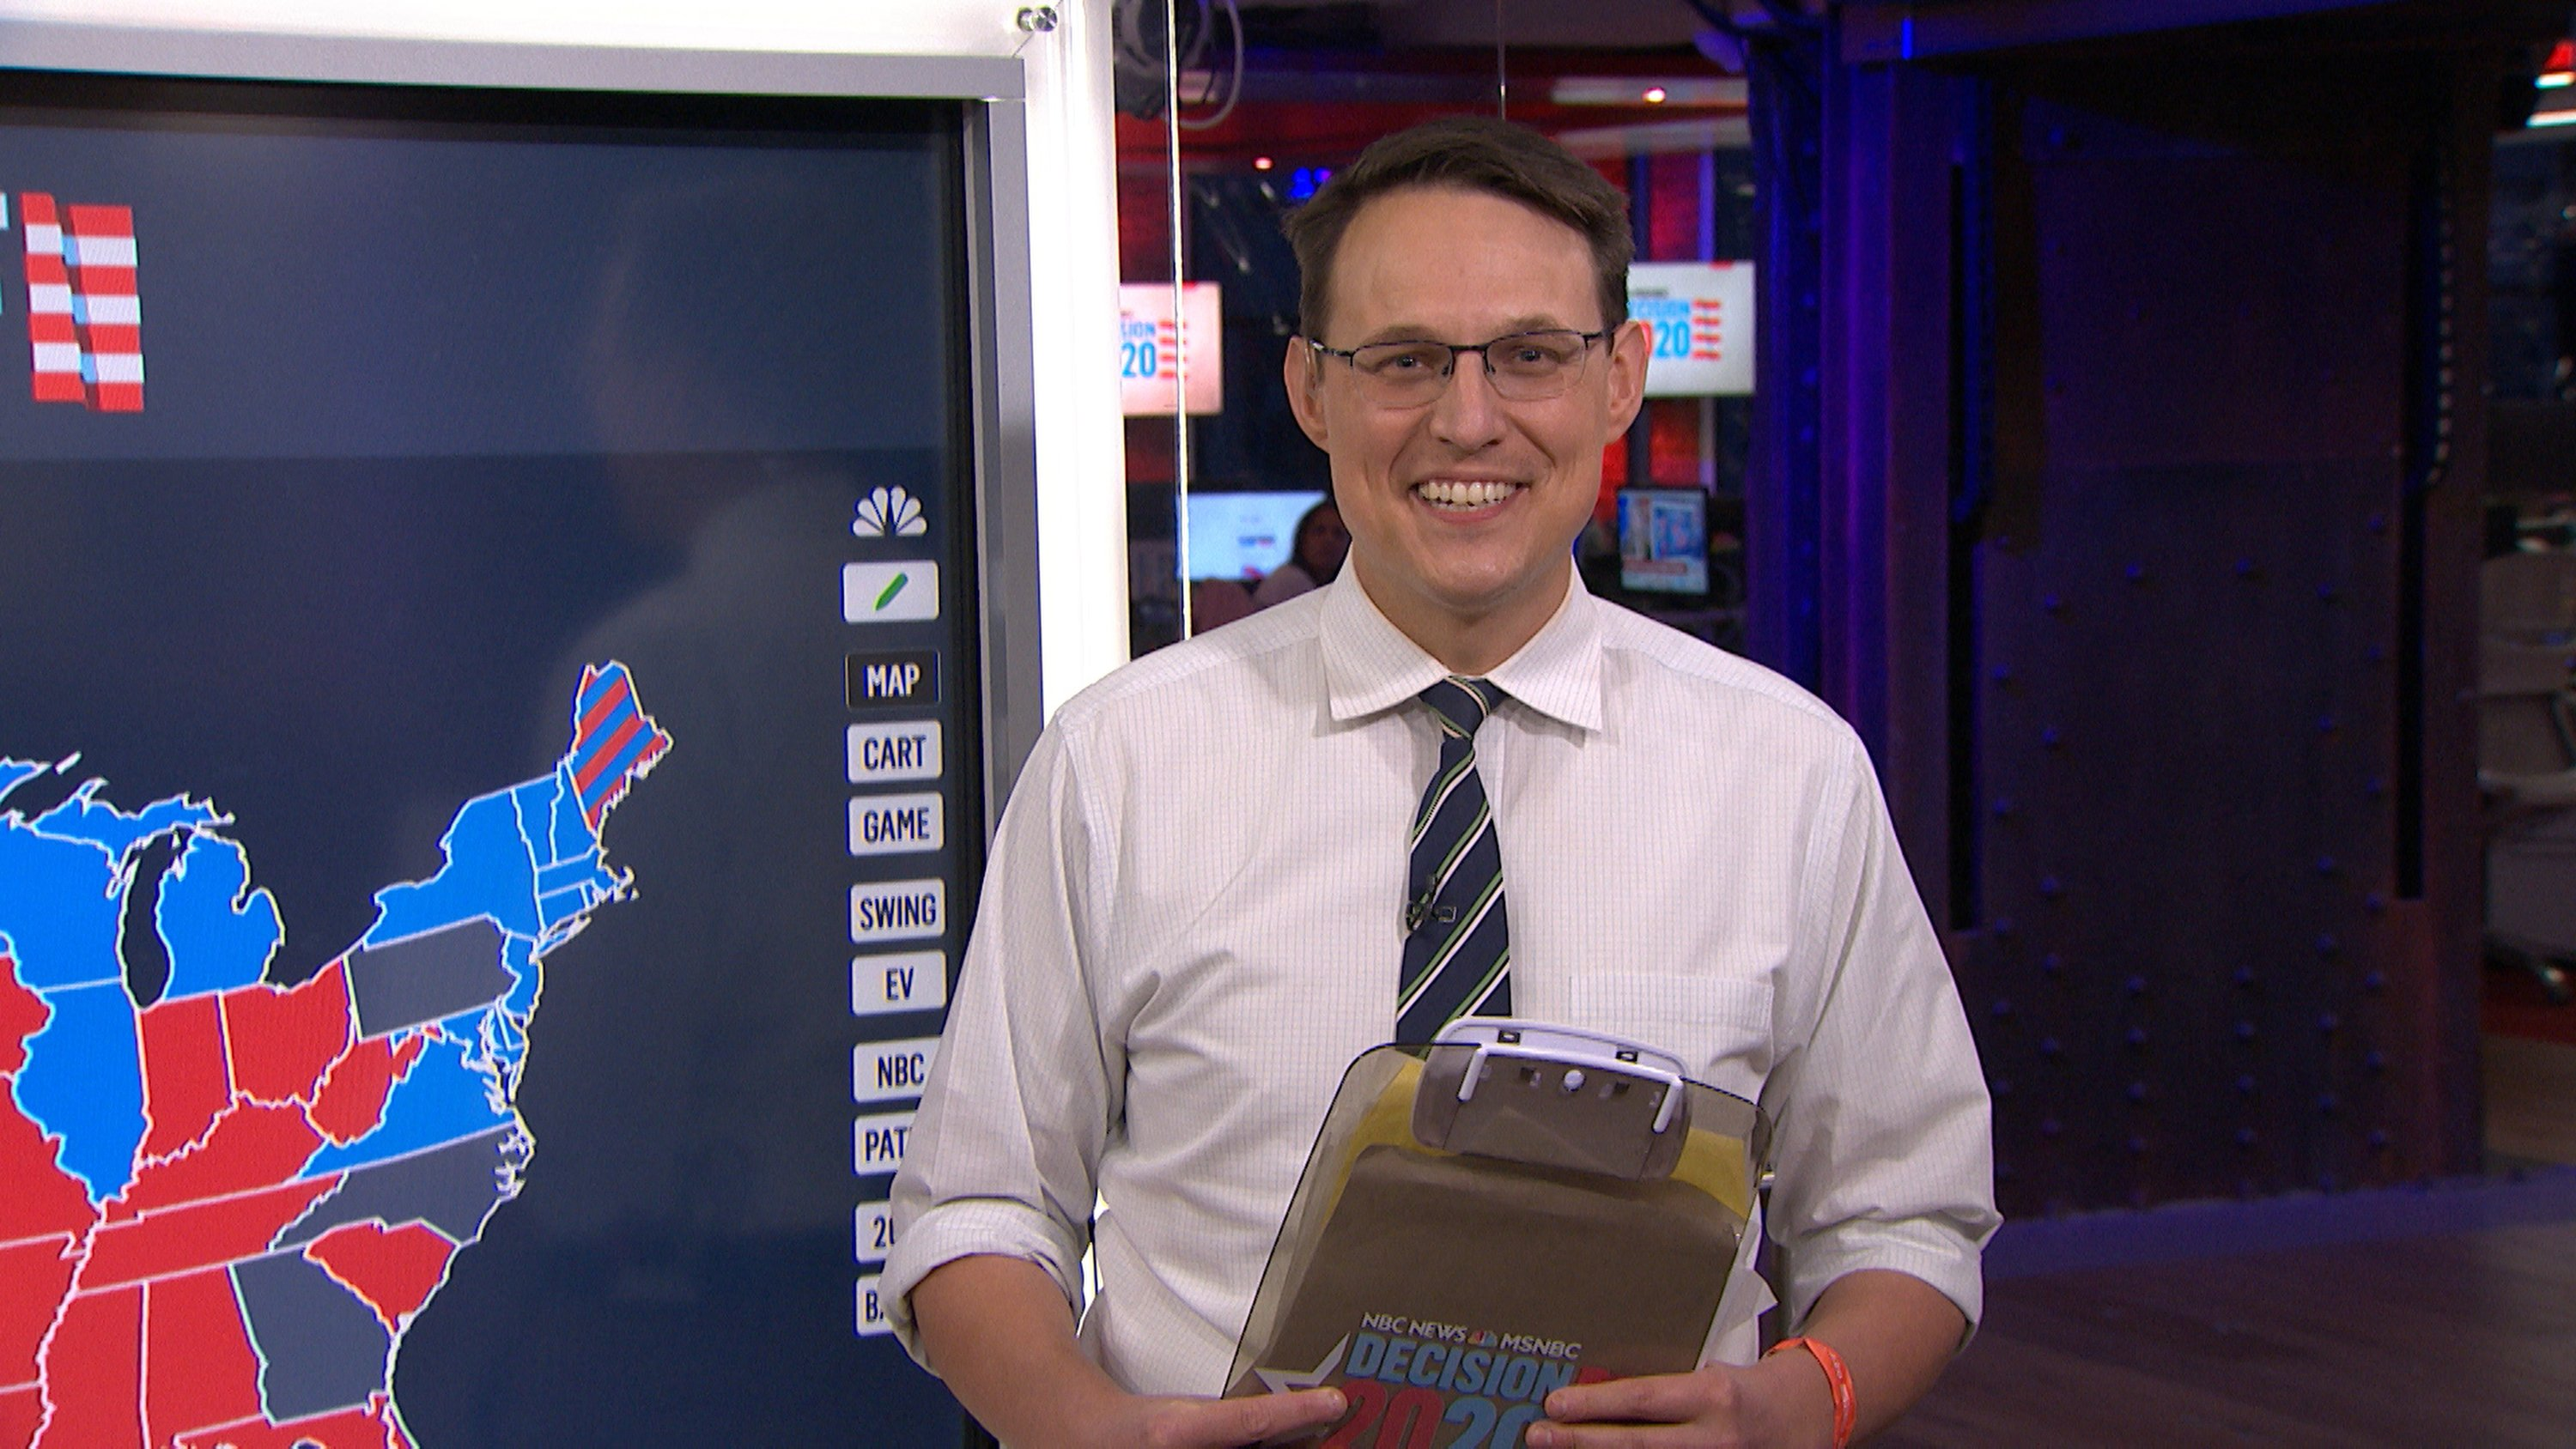 NBC News Journalist Steve Kornacki during an interview on November 4, 2020. | Source: Getty Images